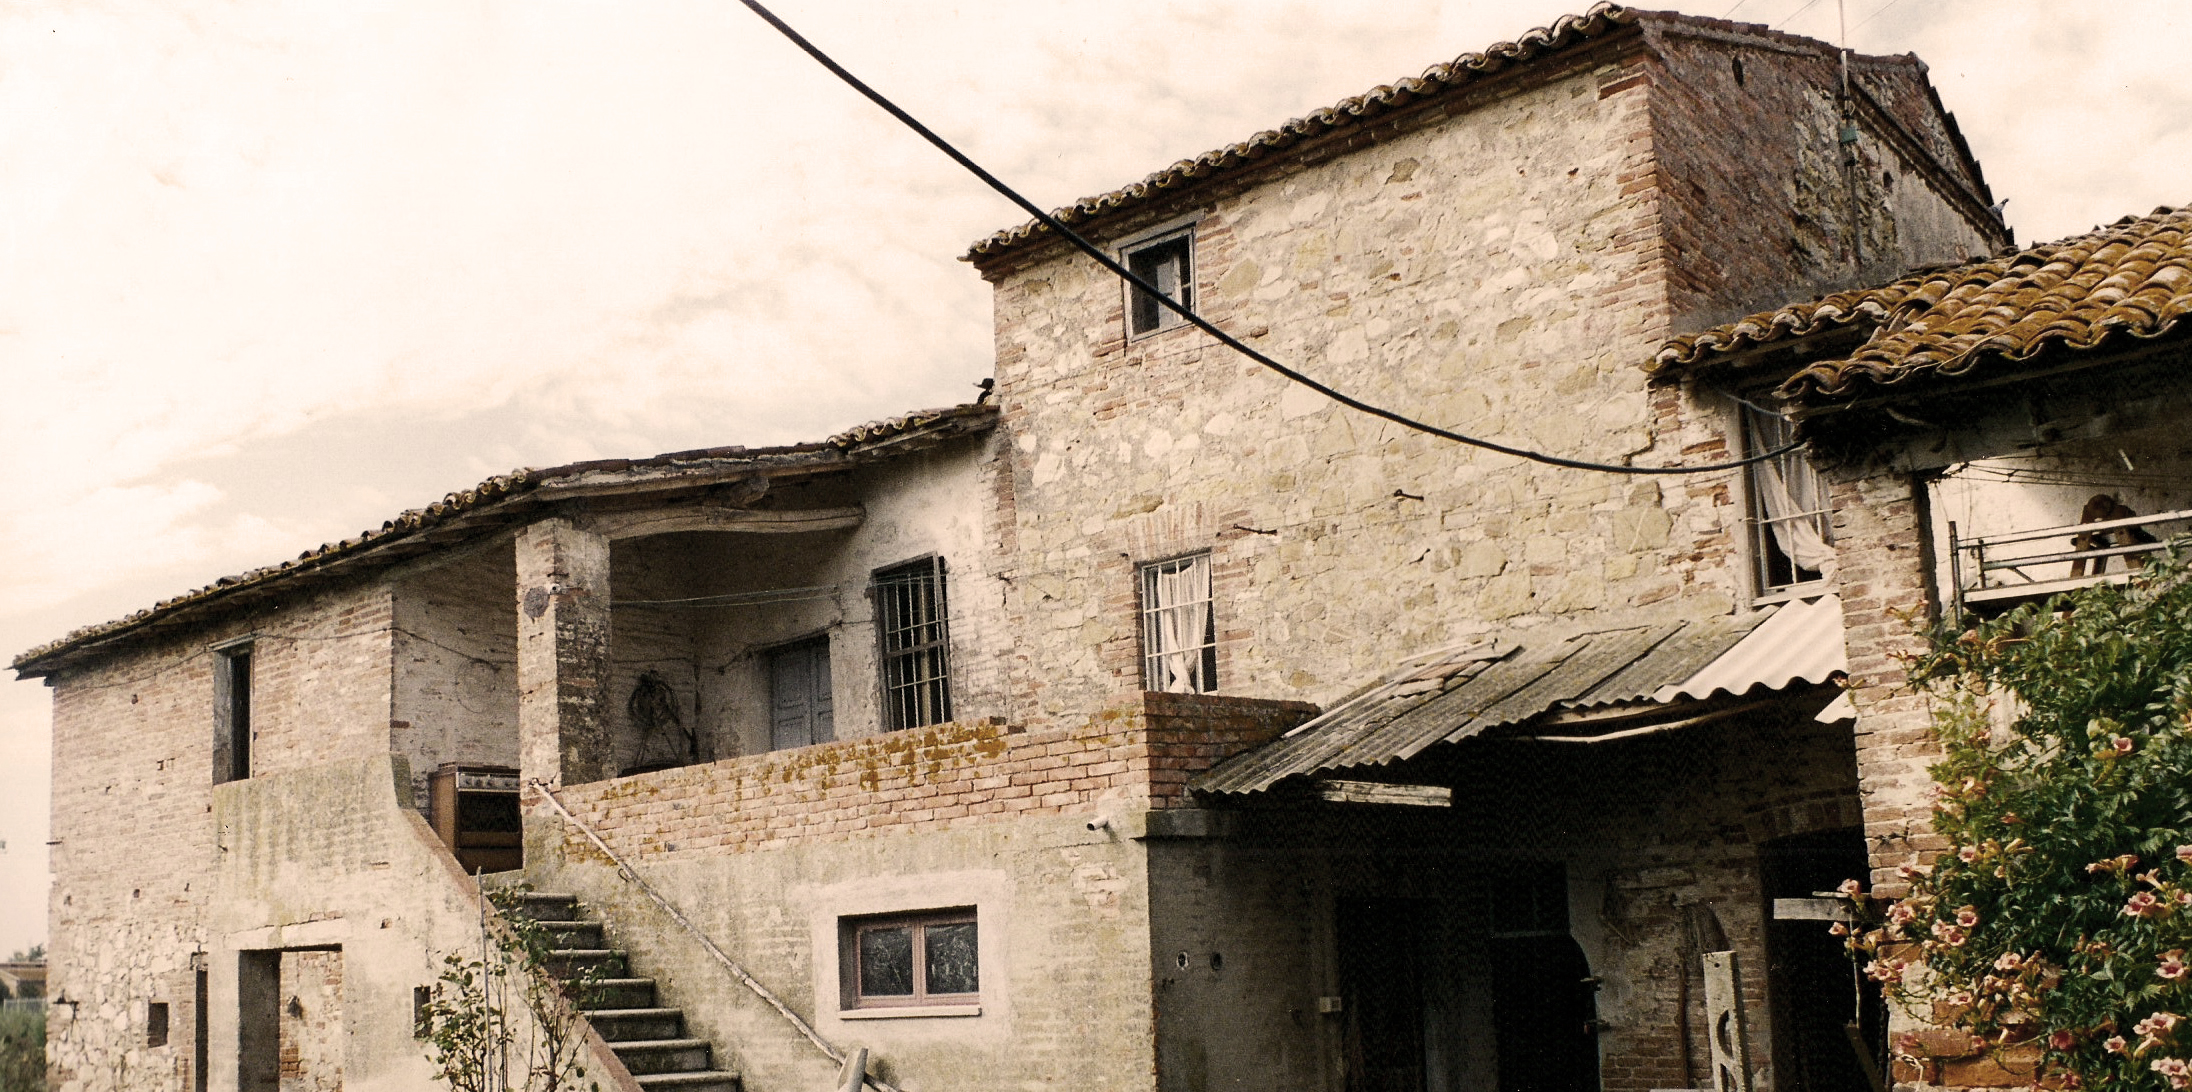 Podere Bello back in 1994, before the restoration.